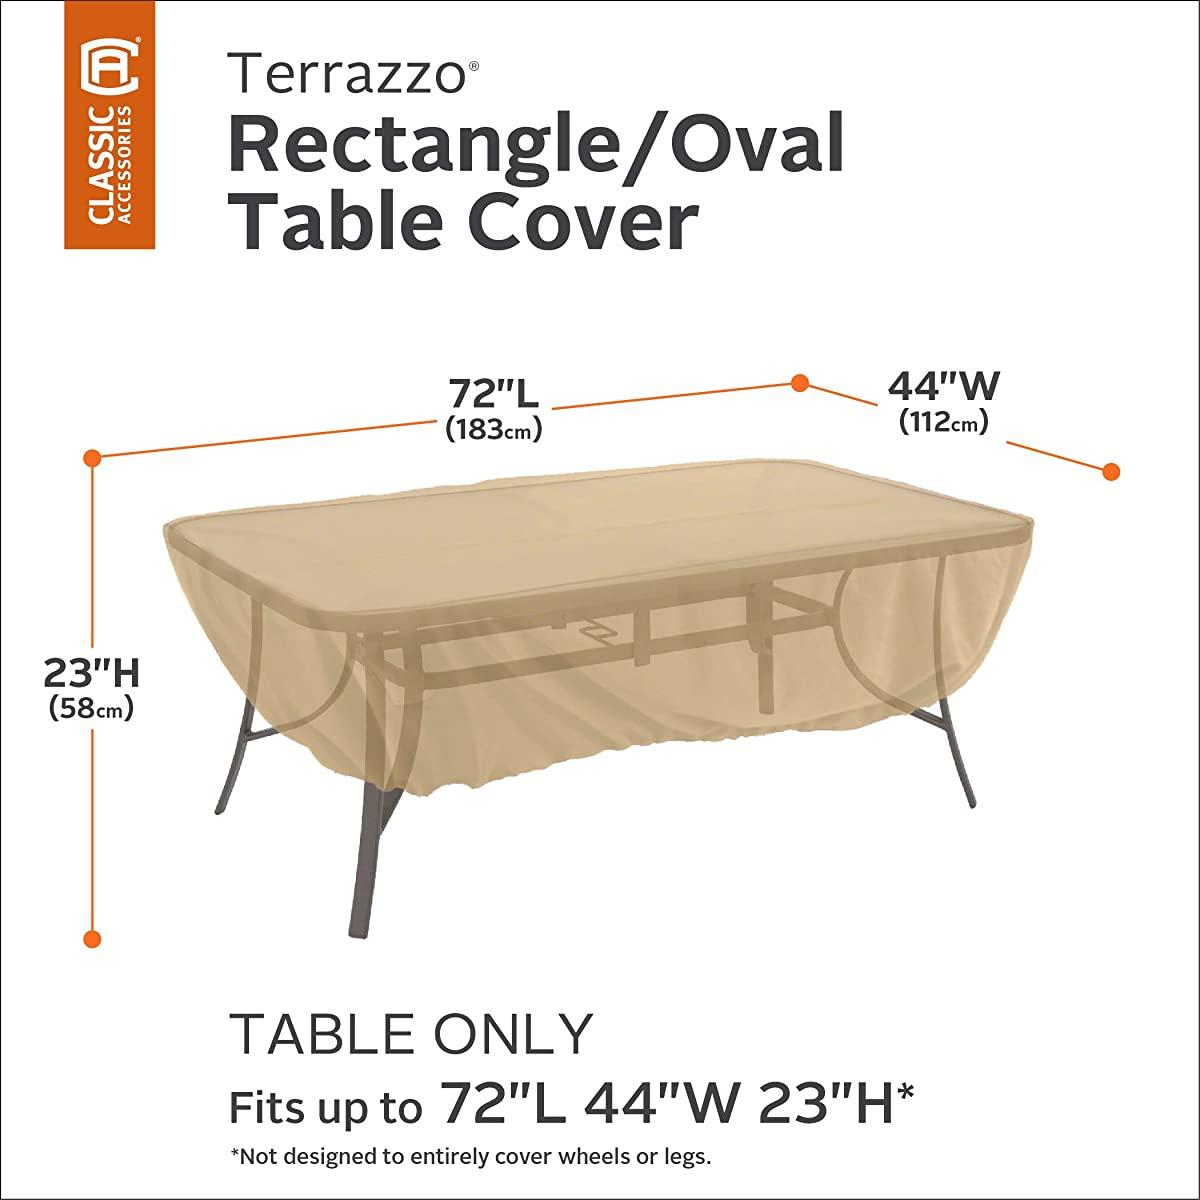 Classic Accessories Terrazzo Rectangular/Oval Patio Table Cover - All Weather Protection Outdoor Furniture Cover (58242-EC)